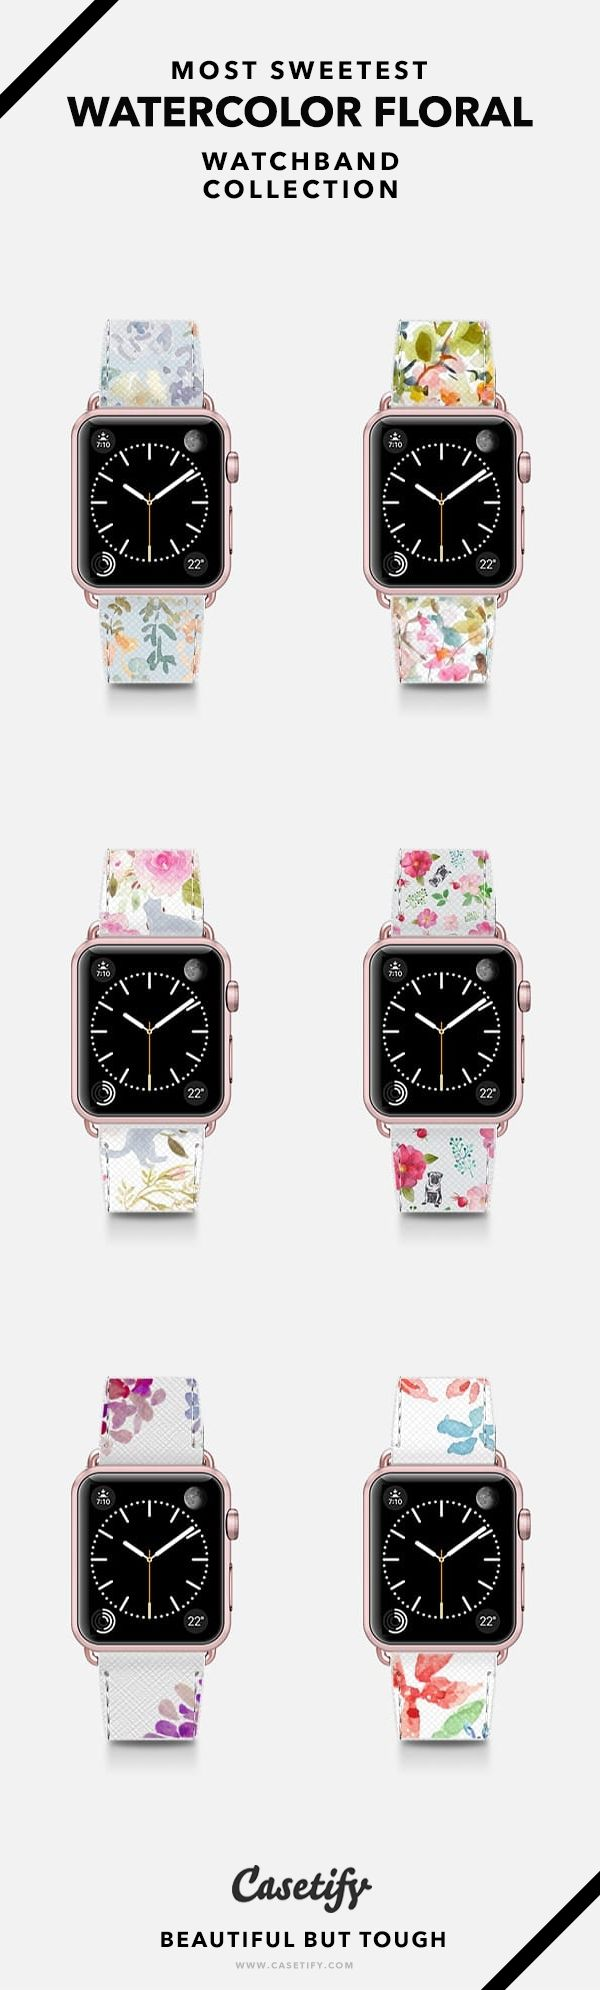 Most Sweetest Watercolor Floral Watchband Collection - Apple Watch Bands Silver/Rose Gold/Matte Black - Shop them here ☝️☝️☝️ BEAUTIFUL BUT TOUGH ✨- Watercolor, Art, Craft, Drawing, Flowers, Floral, Sweet, Treat Yourself